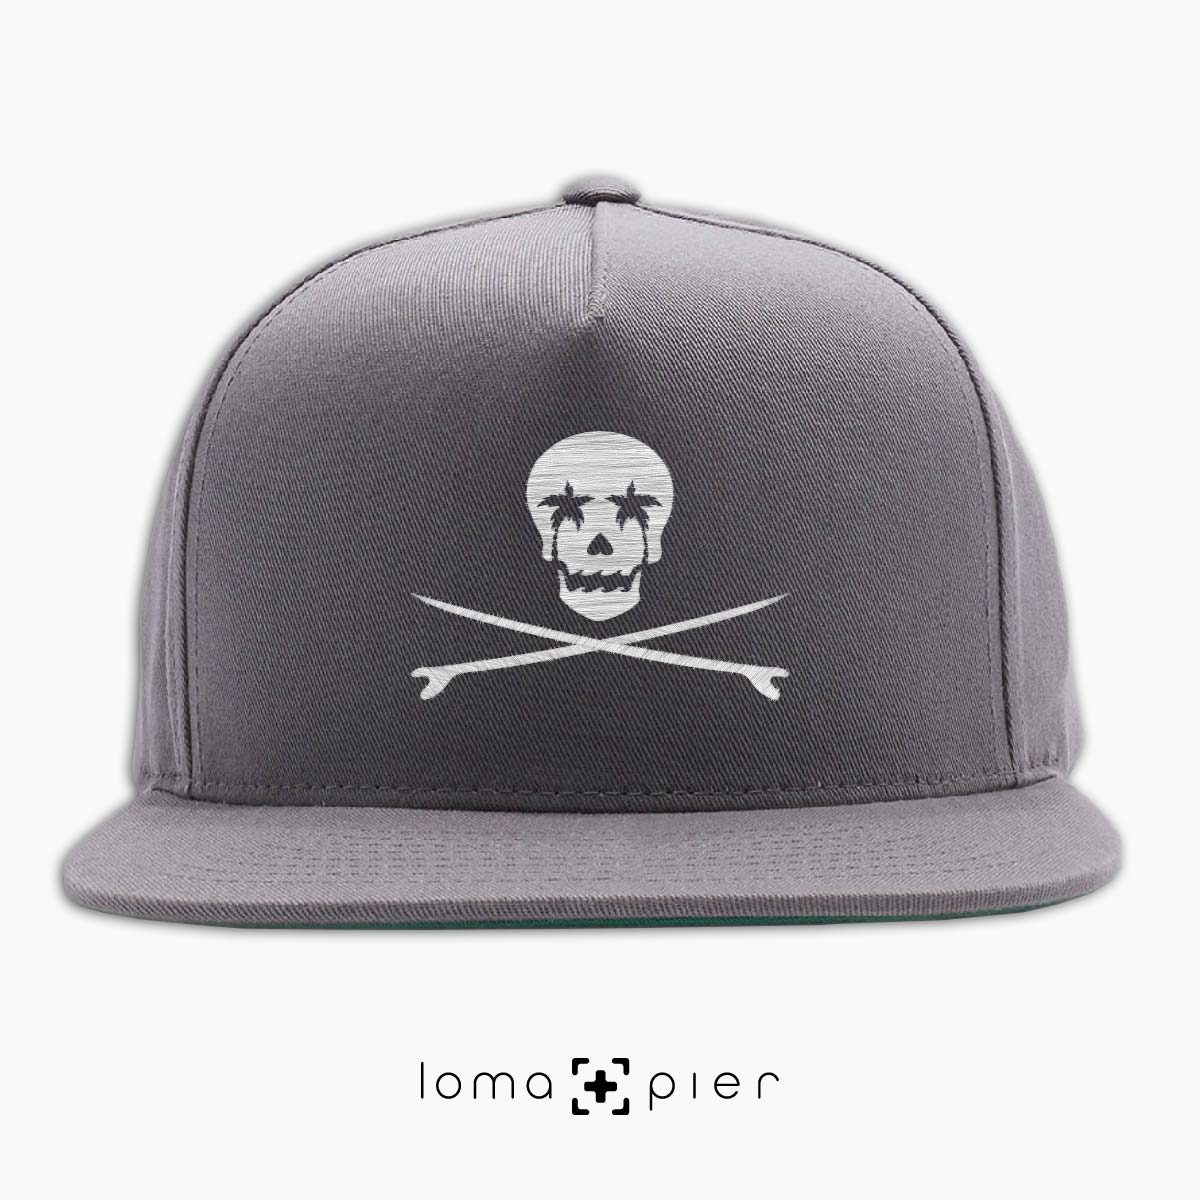 SKULL SURFBOARDS redondo beach snapback hat in grey by loma+pier hat store